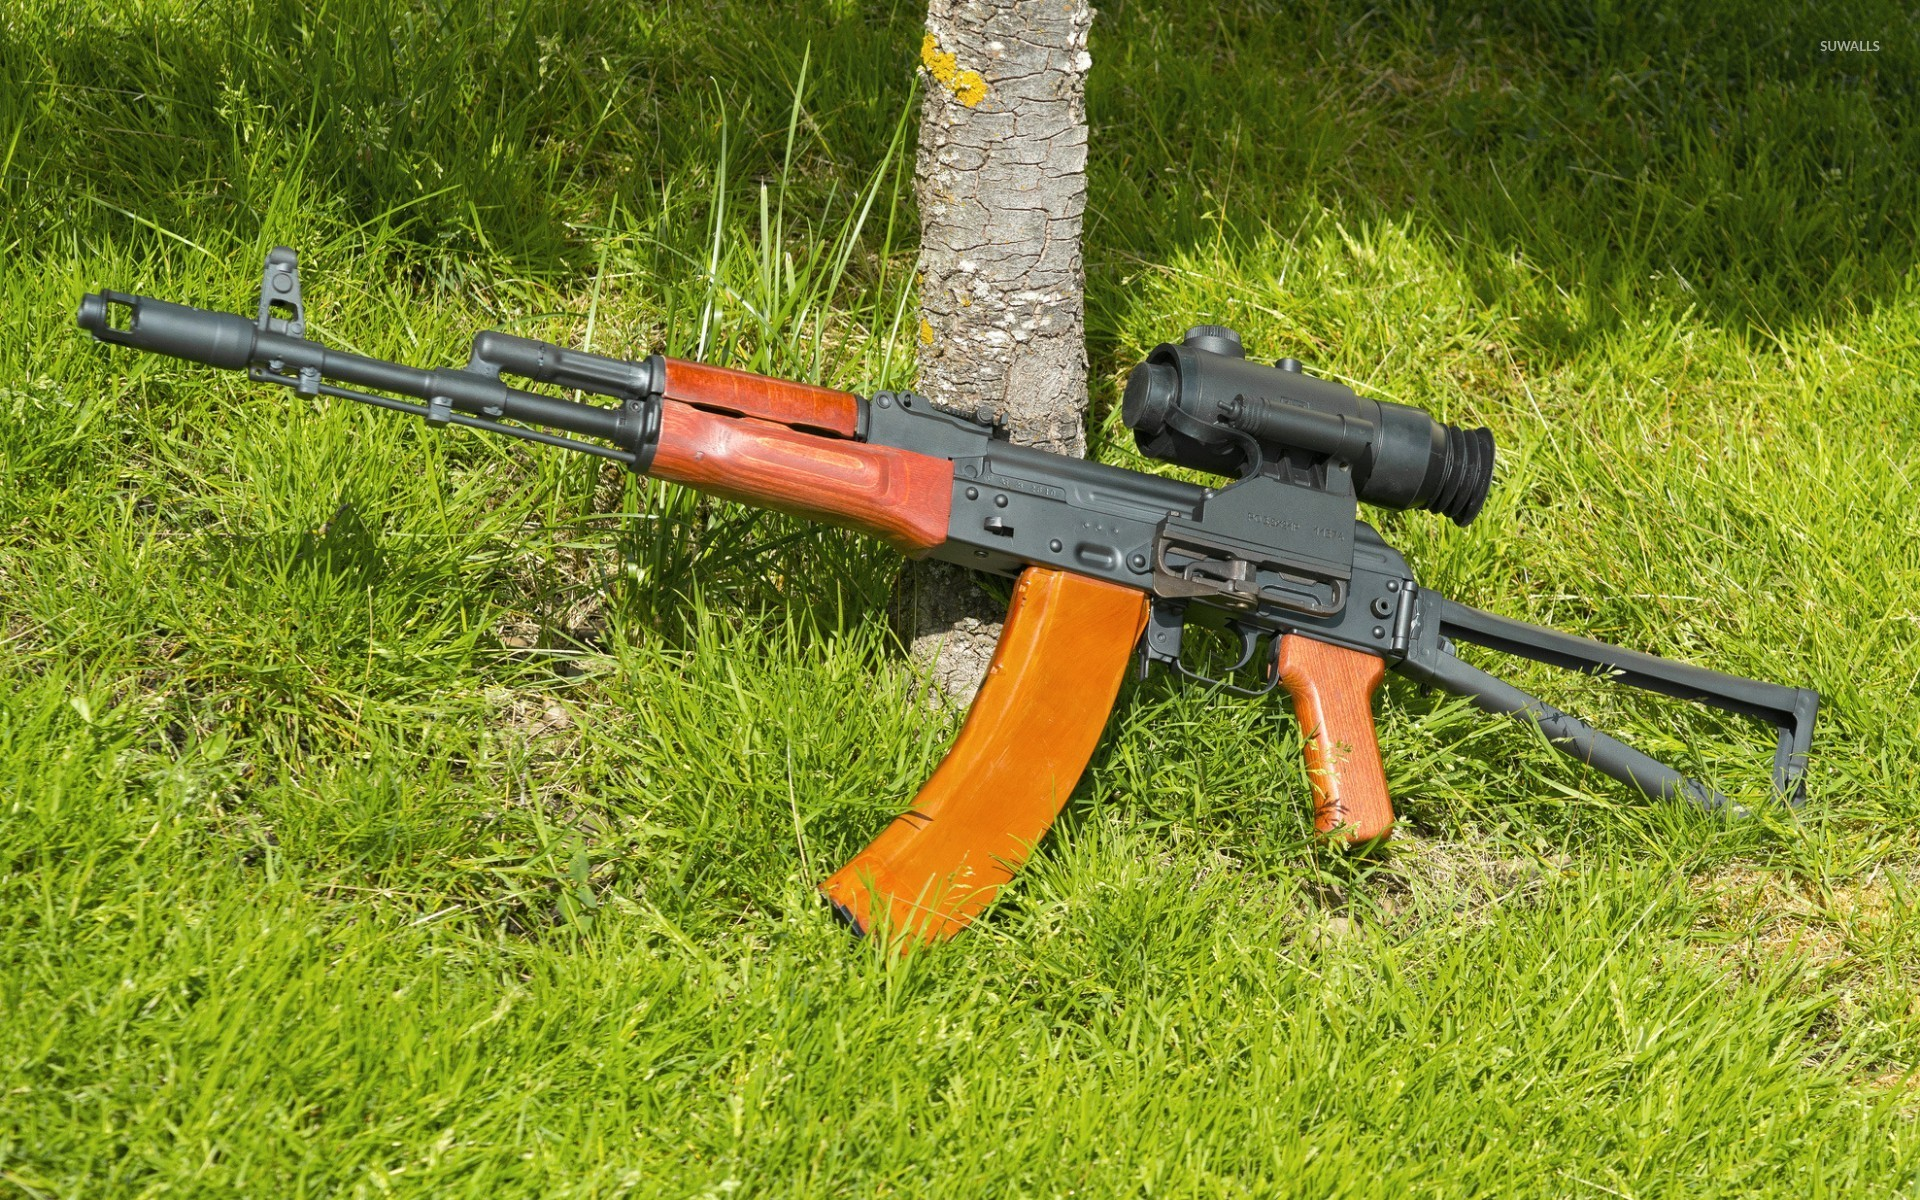 AK-74 wallpaper - Photography wallpapers - #45954